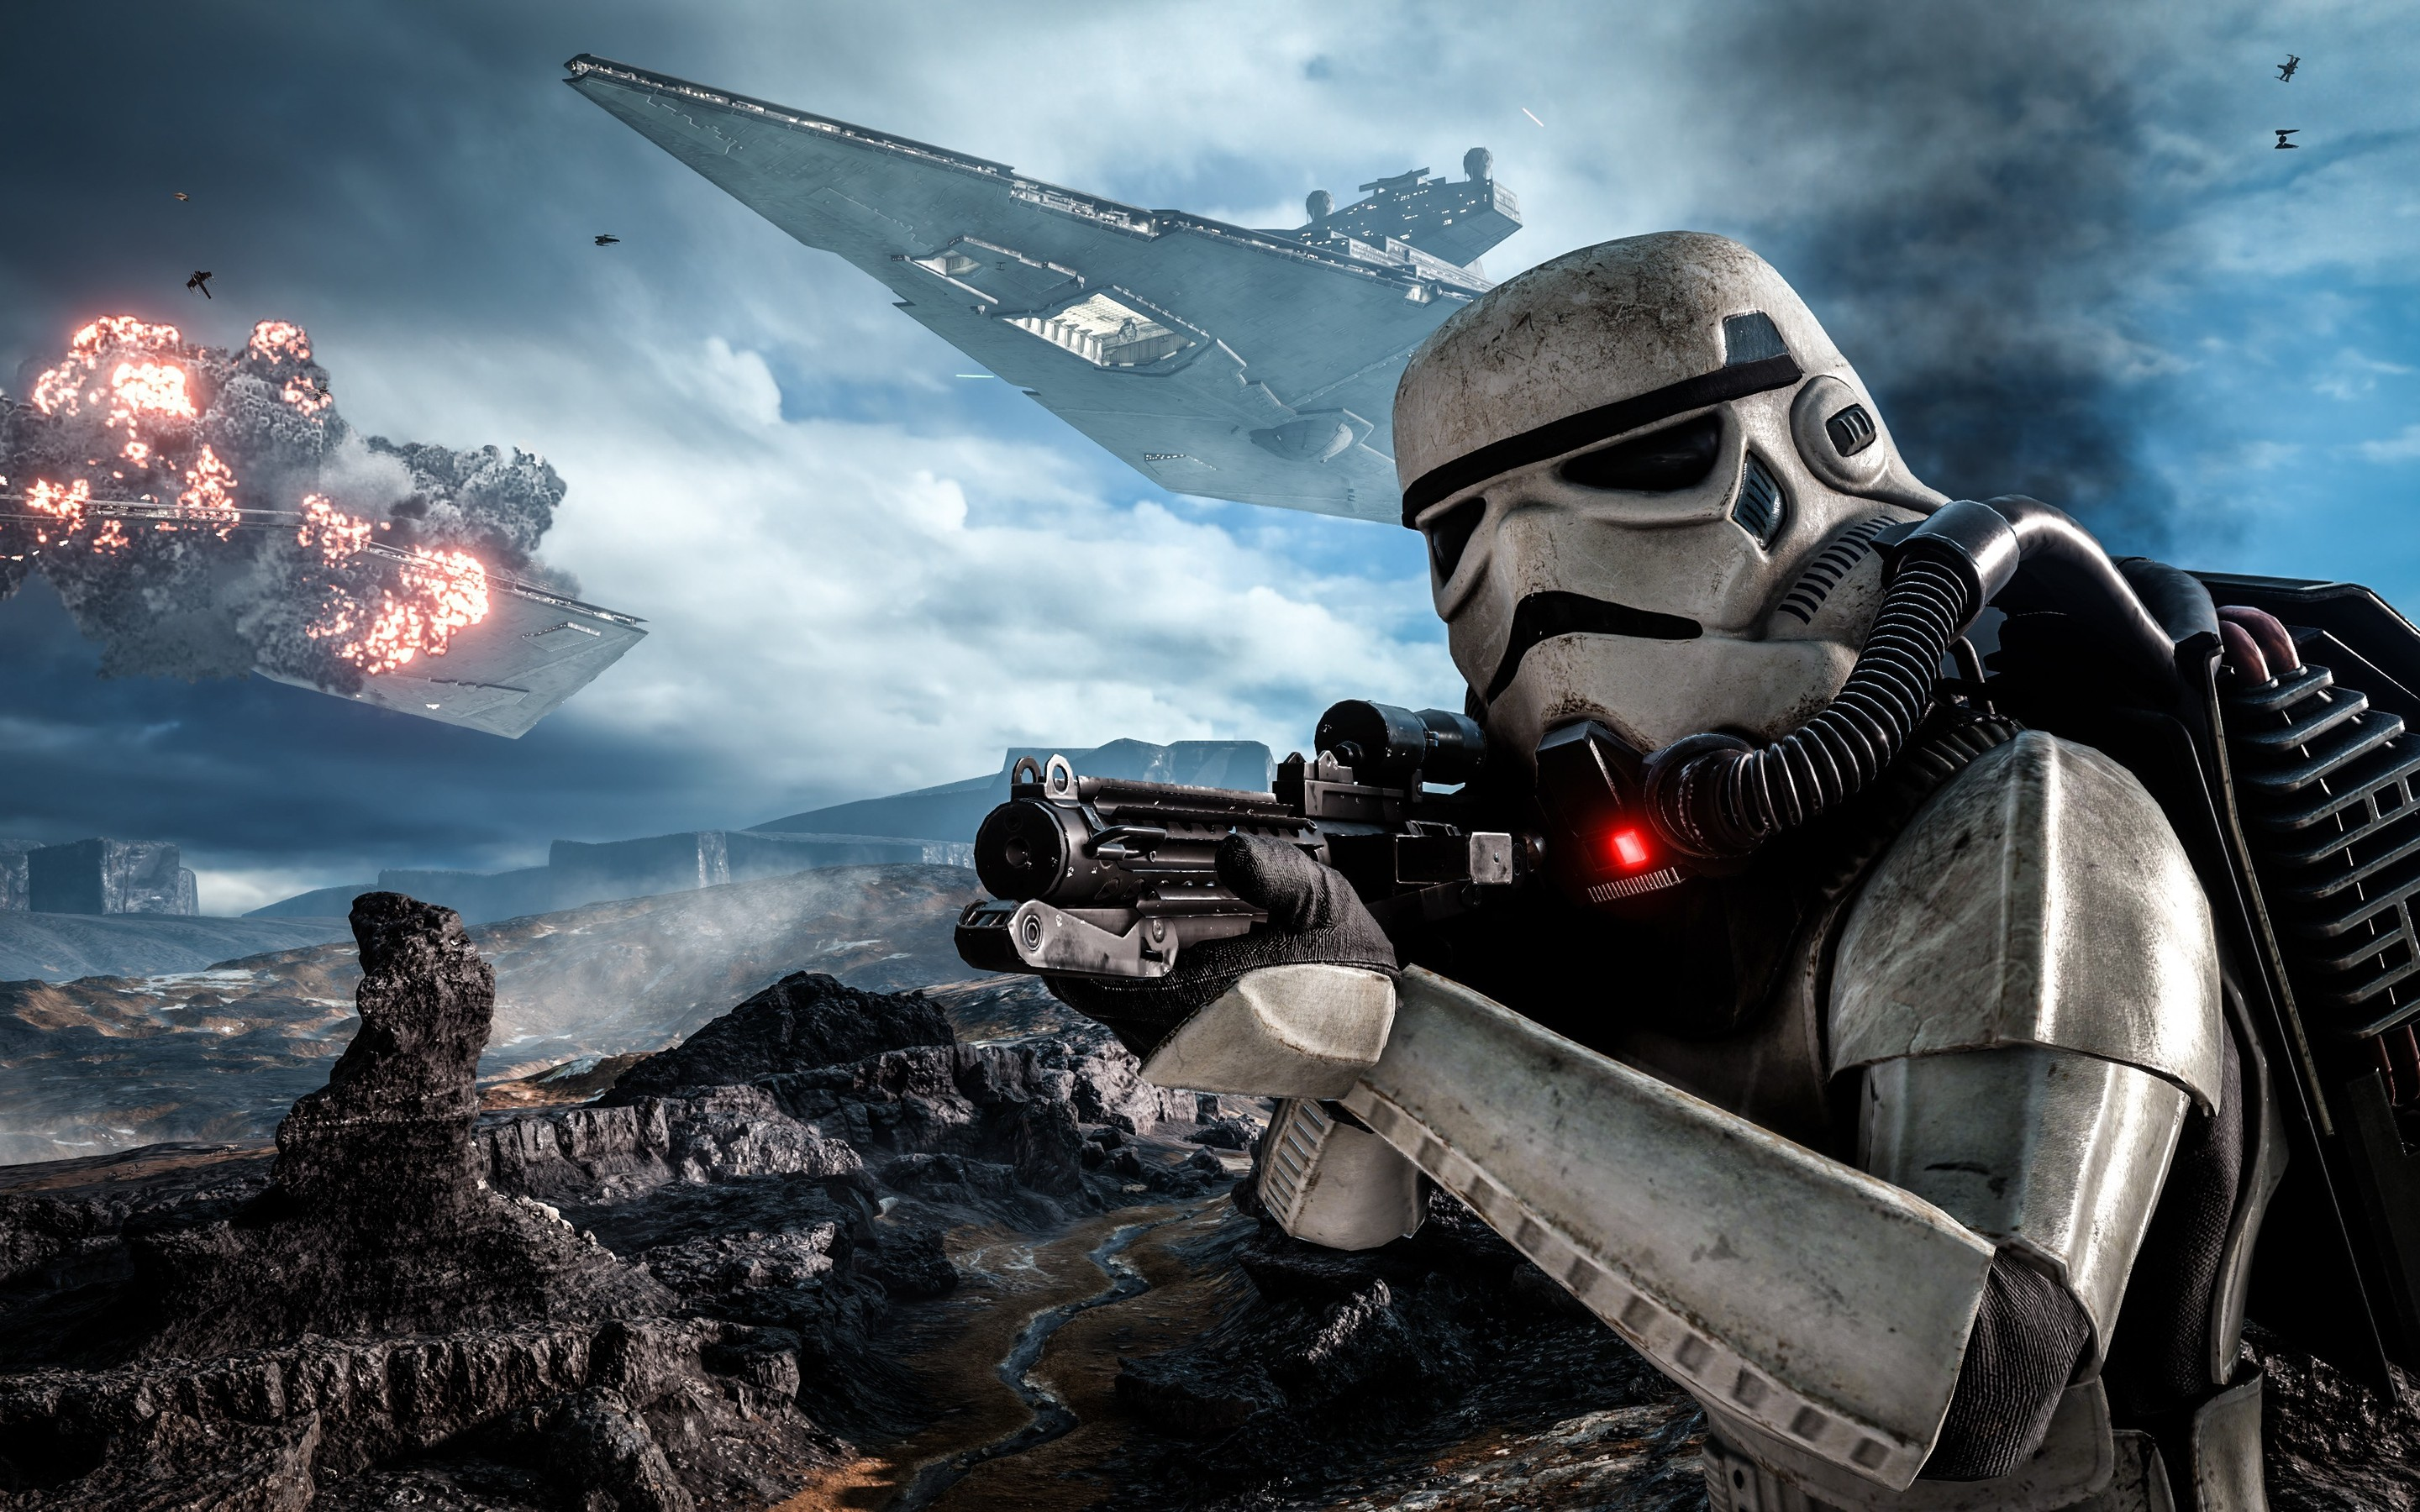 143 star wars battlefront (2015) hd wallpapers | backgrounds